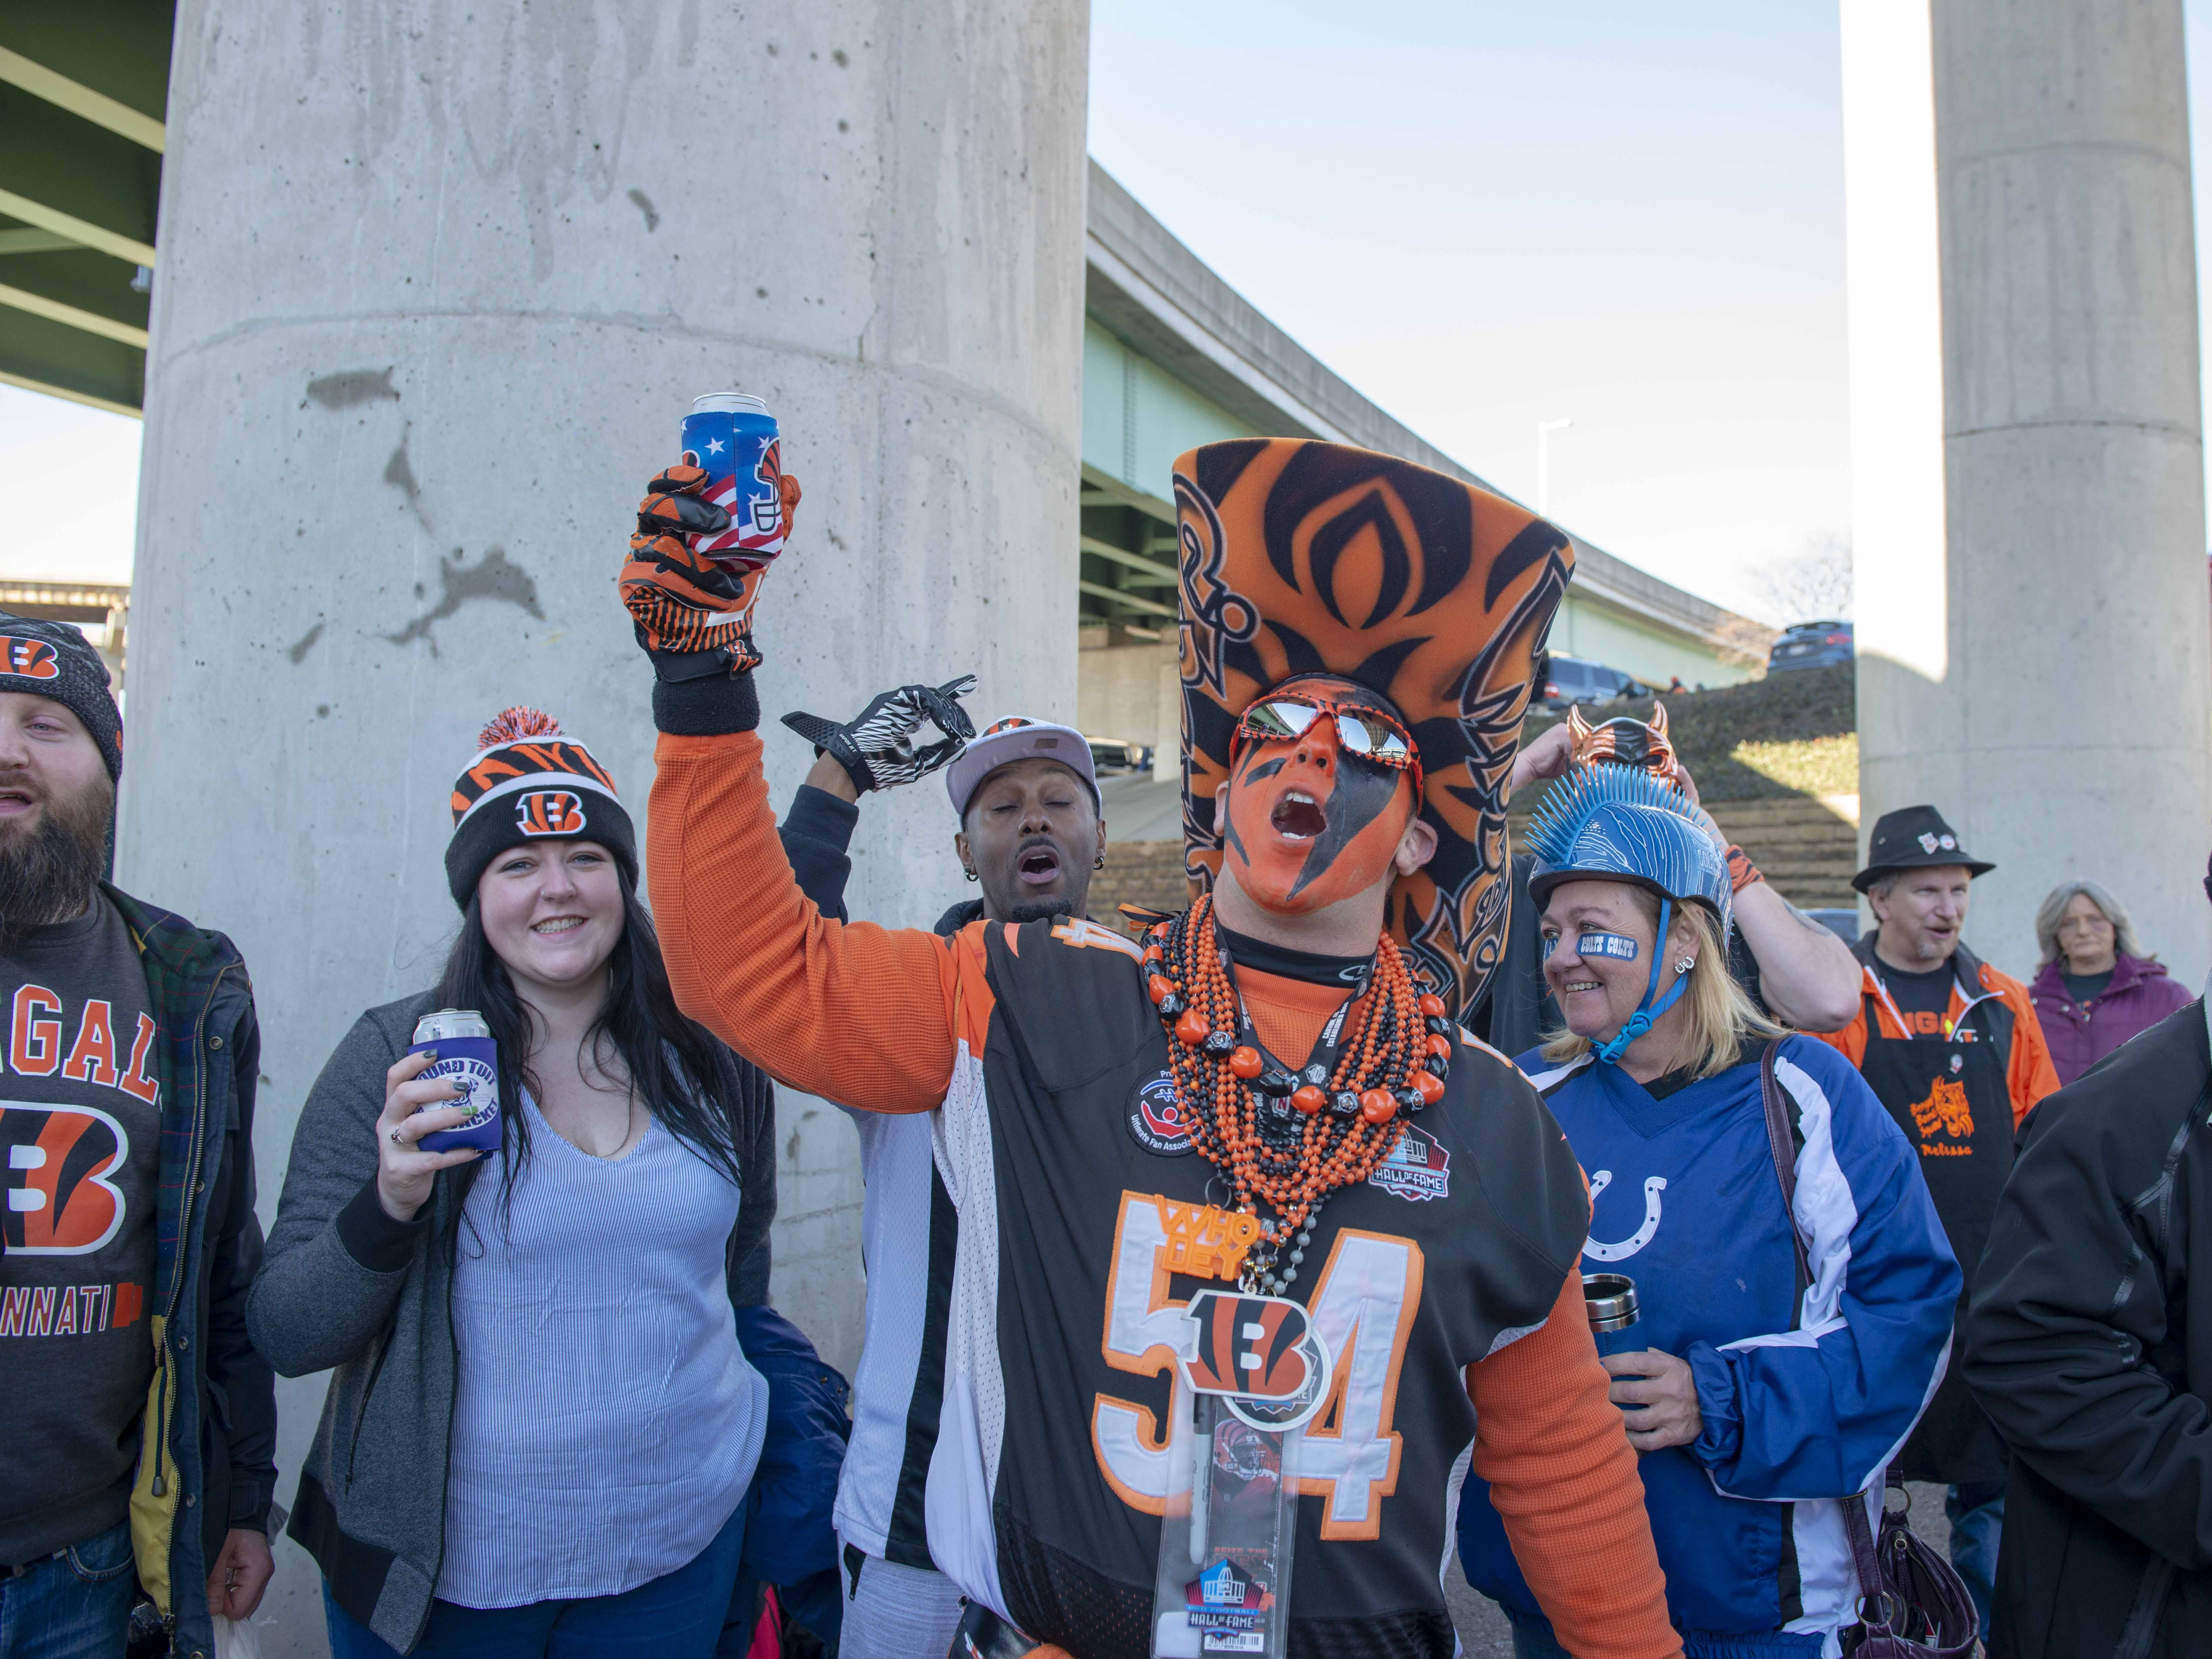 Cincinnati Bengals fans showed up for tailgating parties as the Cincinnati Bengals hosted the Denver Broncos at Paul Brown Stadium Sunday, December 2, 2018. Who Dey Baby enjoys a beer along with a song.